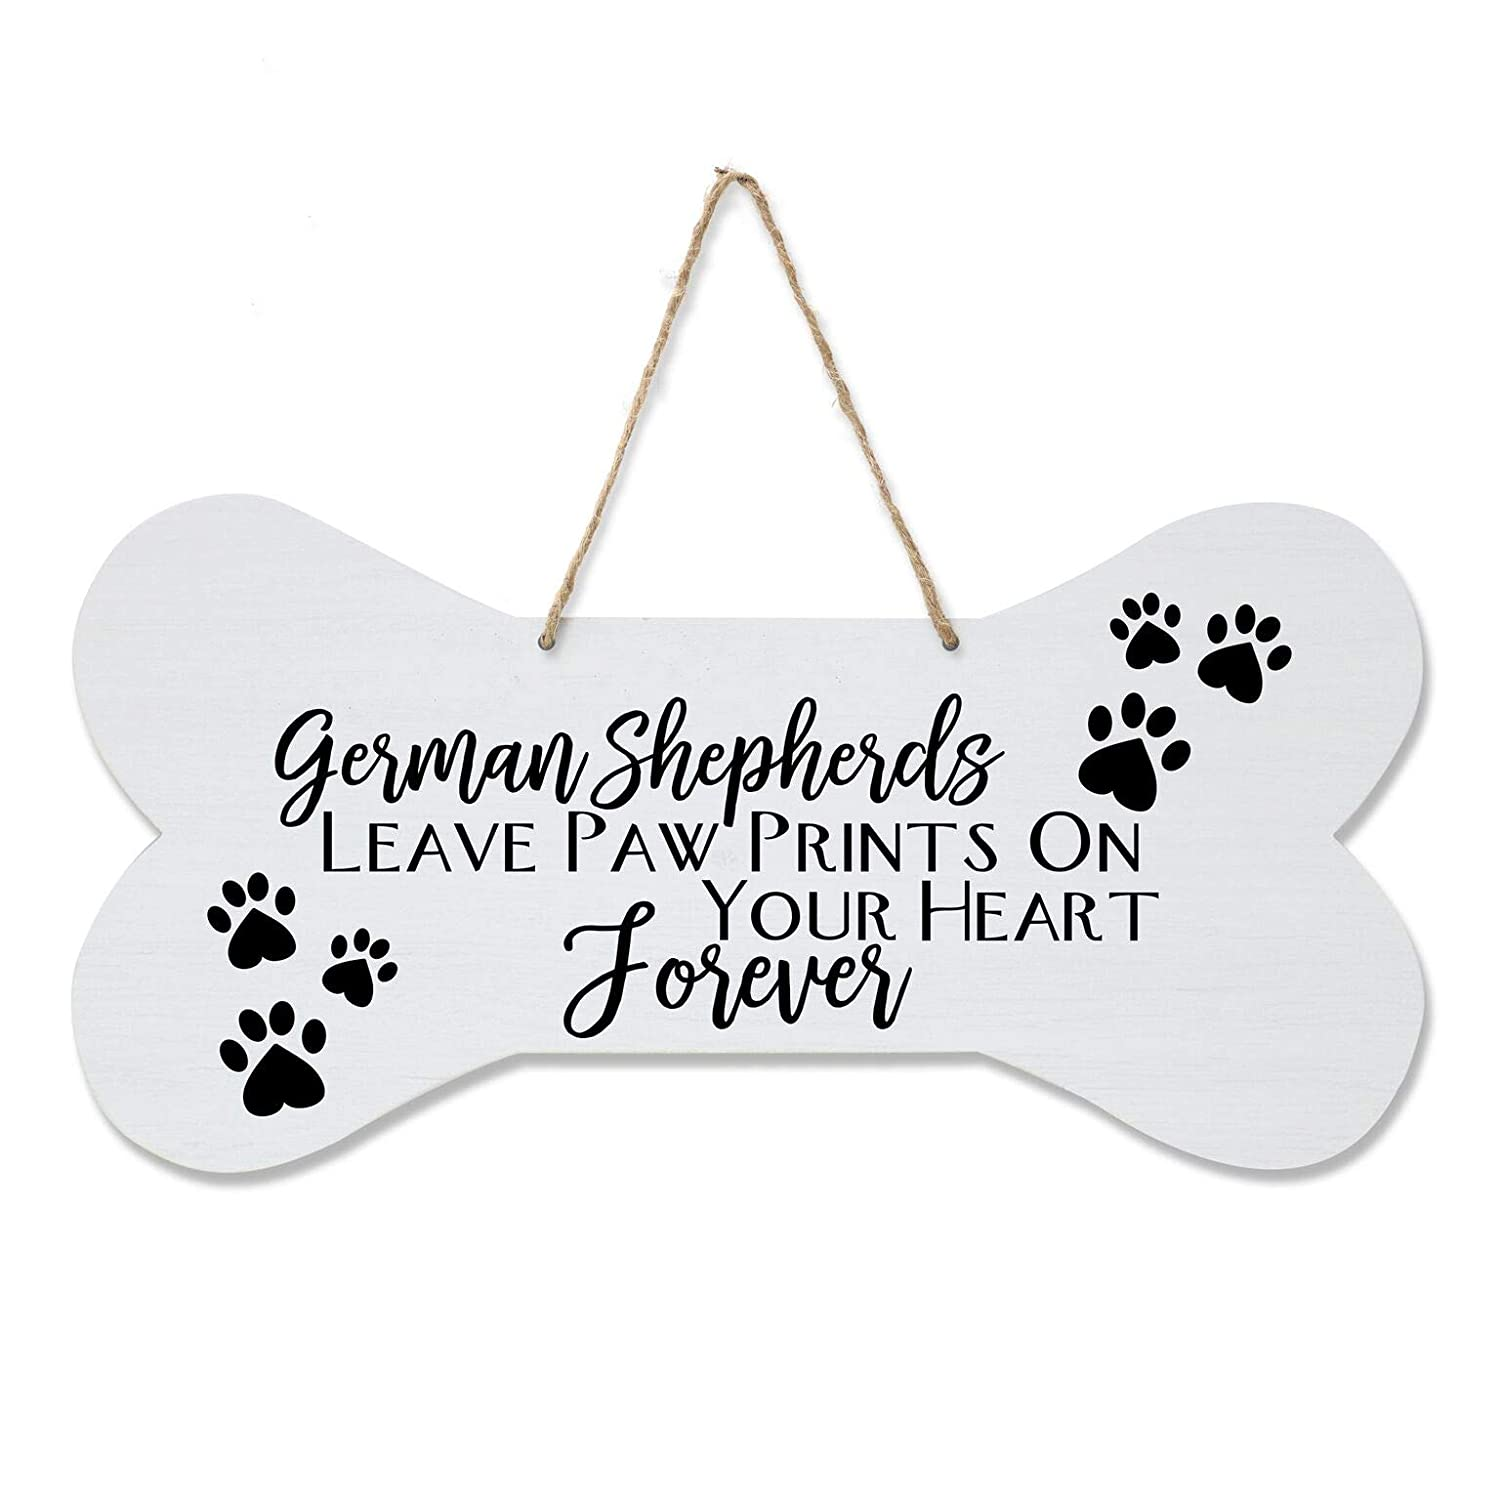 "White A House LifeSong Milestones German Shepherd Pet Quote Dog Bone Wall Hanging Sign Dog Owner Gift for Home Decor 8/"" x 16/"" Dog Lovers Gifts for Women"